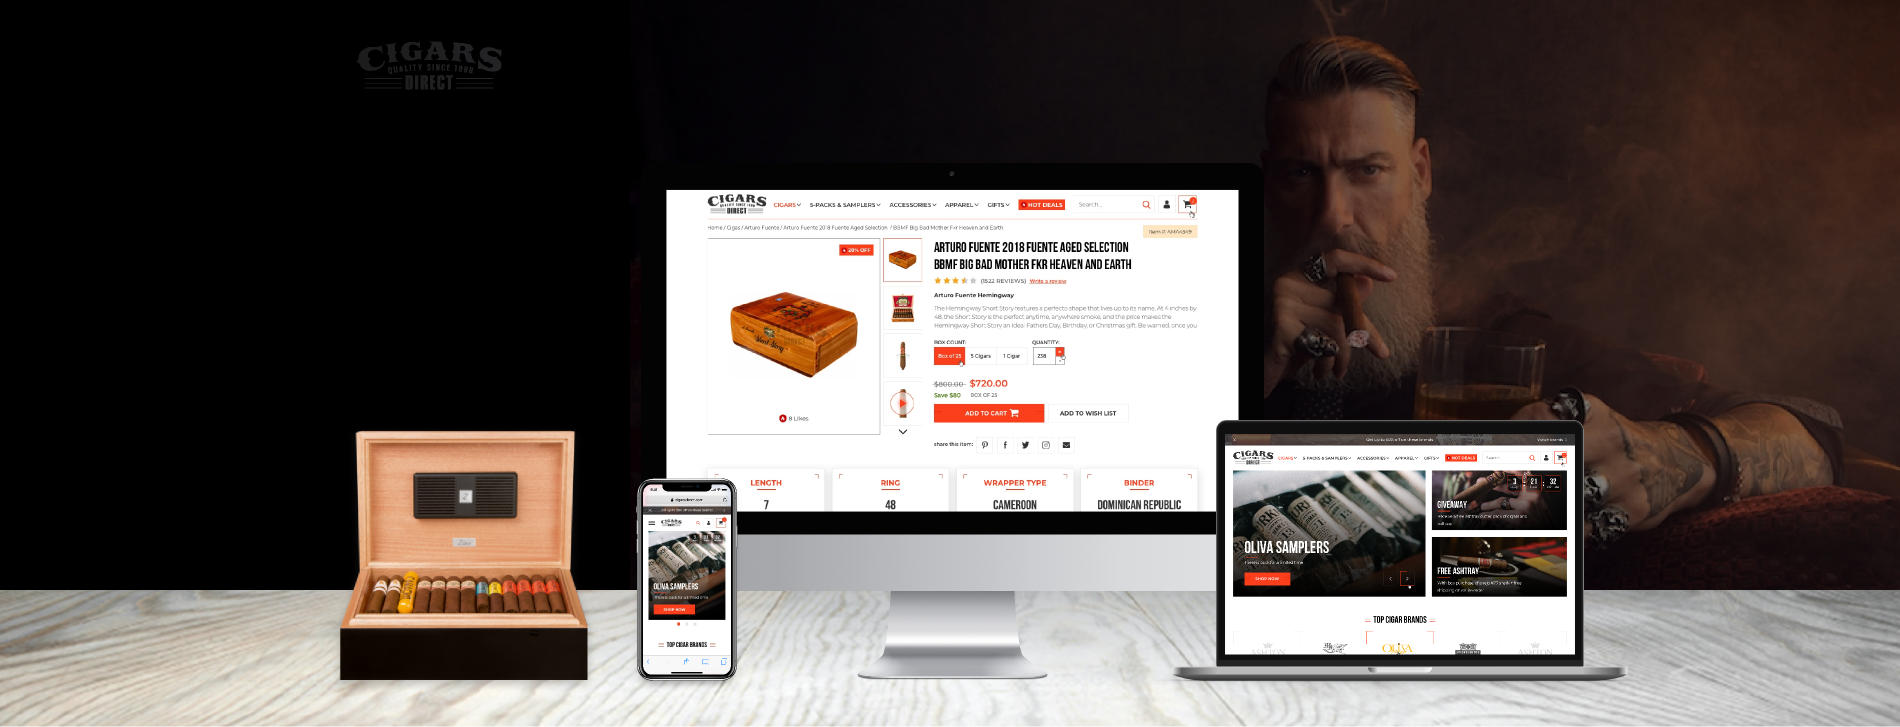 ecommerce digital marketing agency design for cigars direct